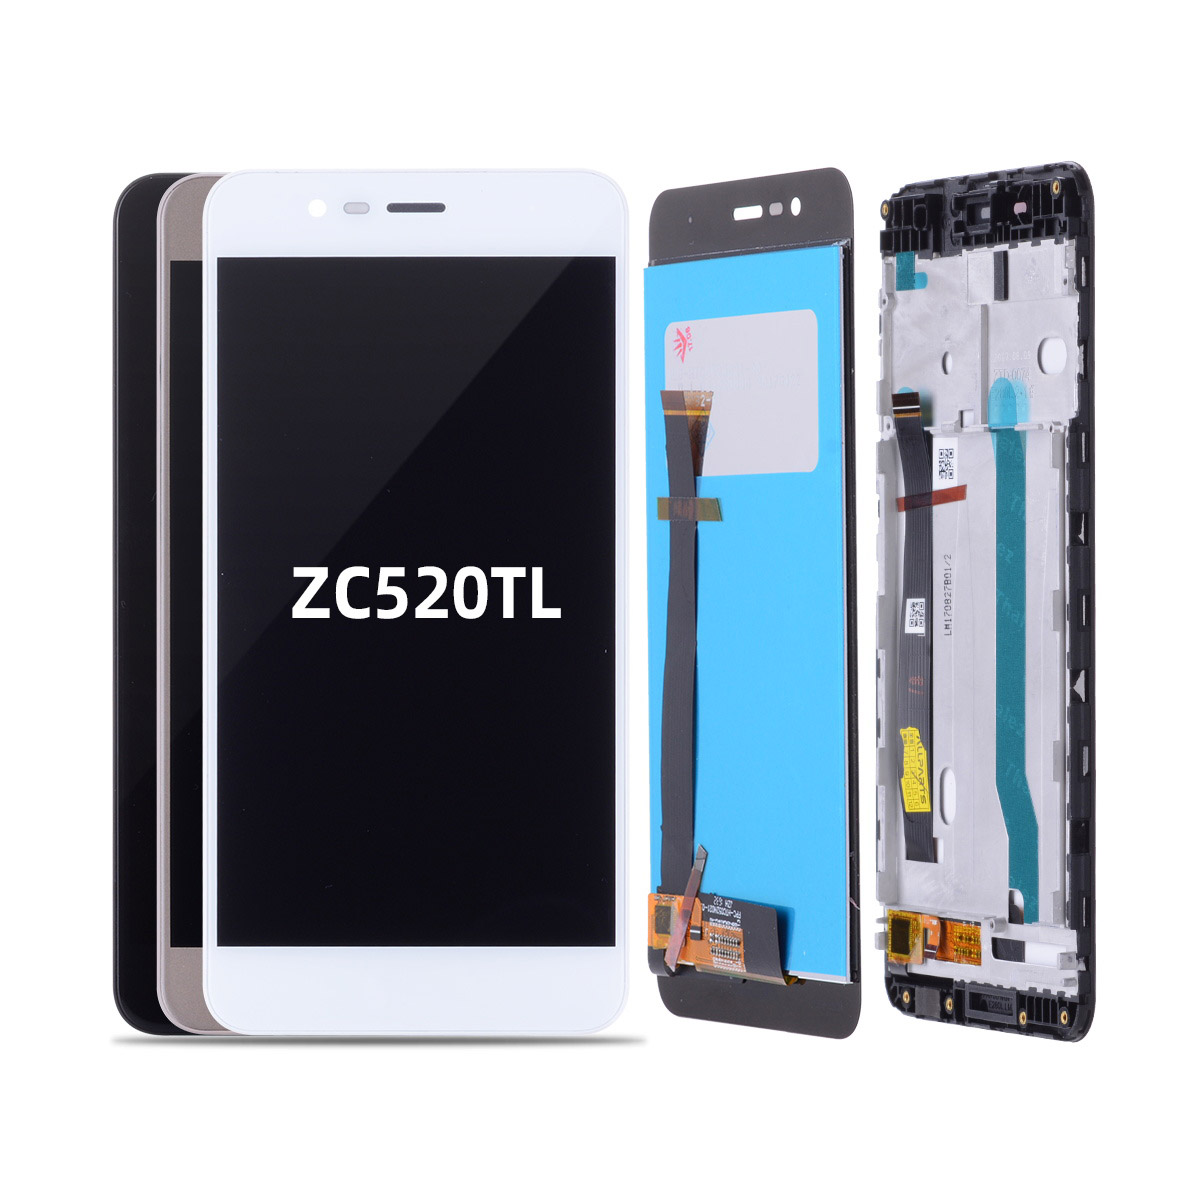 Original For <font><b>ASUS</b></font> <font><b>Zenfone</b></font> <font><b>3</b></font> <font><b>Max</b></font> <font><b>ZC520TL</b></font> LCD Display Touch <font><b>Screen</b></font> with Frame For <font><b>ASUS</b></font> <font><b>ZC520TL</b></font> X008D Display Display <font><b>Replacement</b></font> image